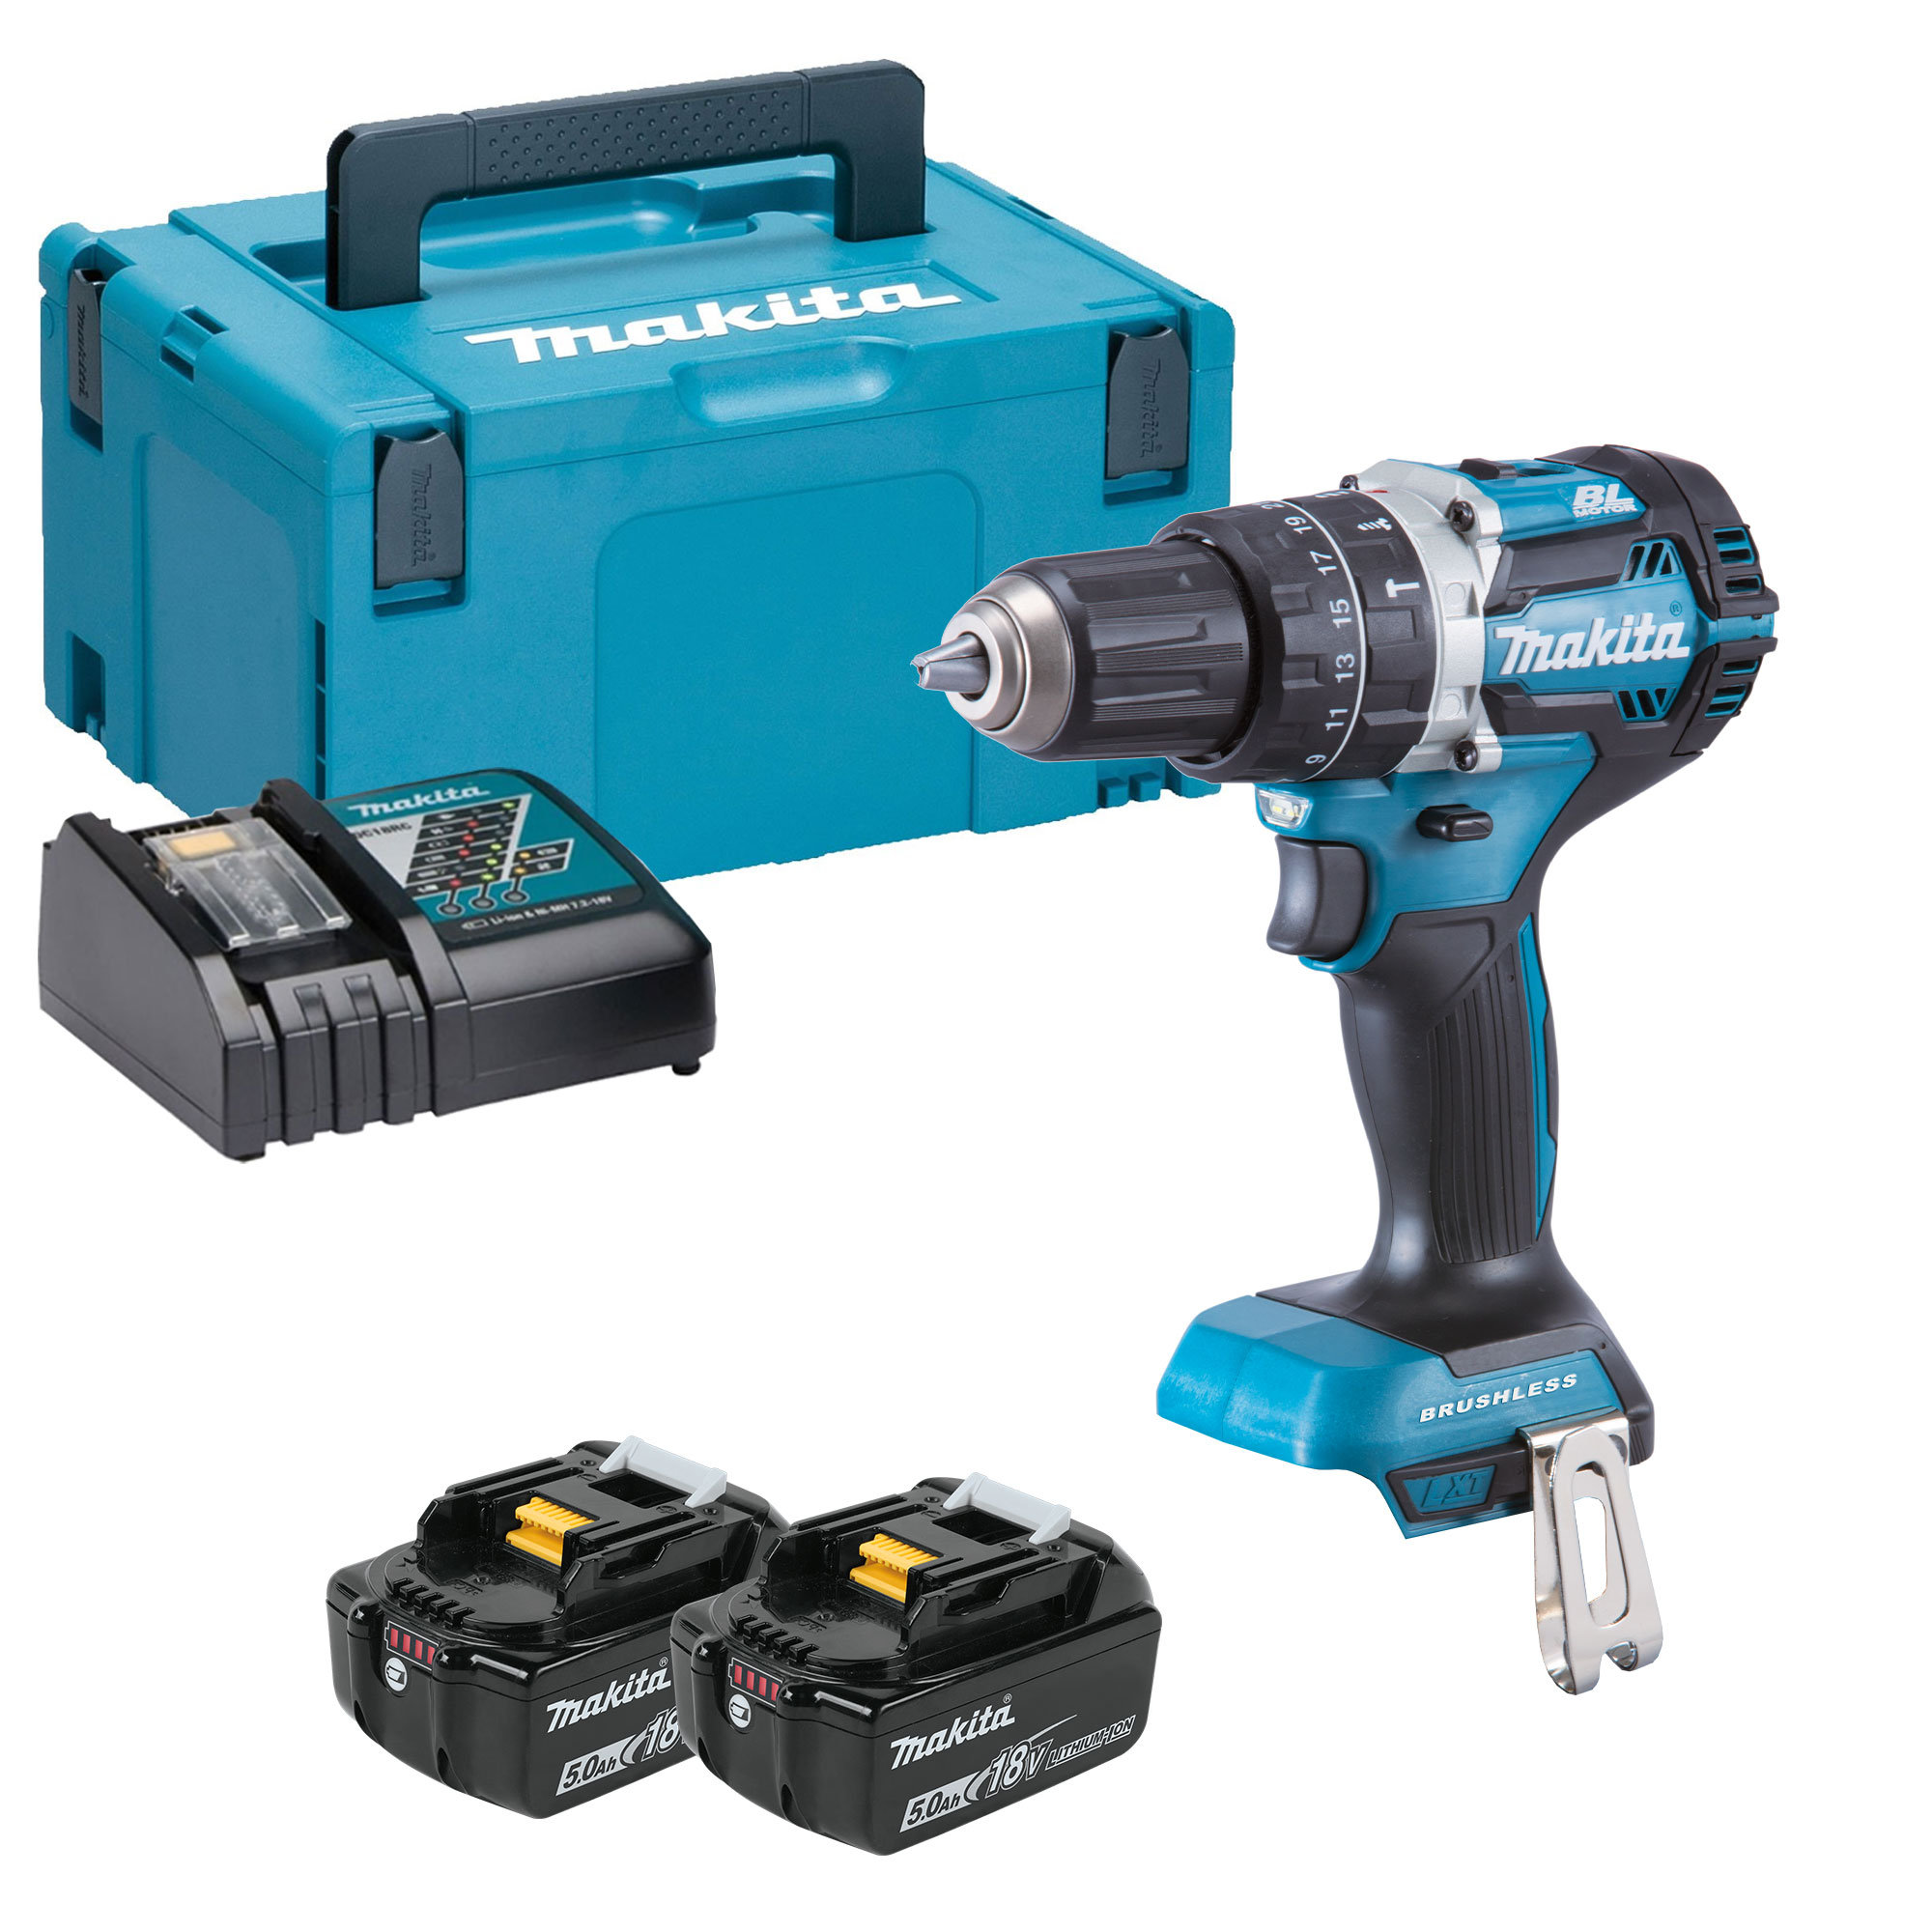 Makita Dhp484rtj Makita 18v Li Ion 5 0ah Brushless